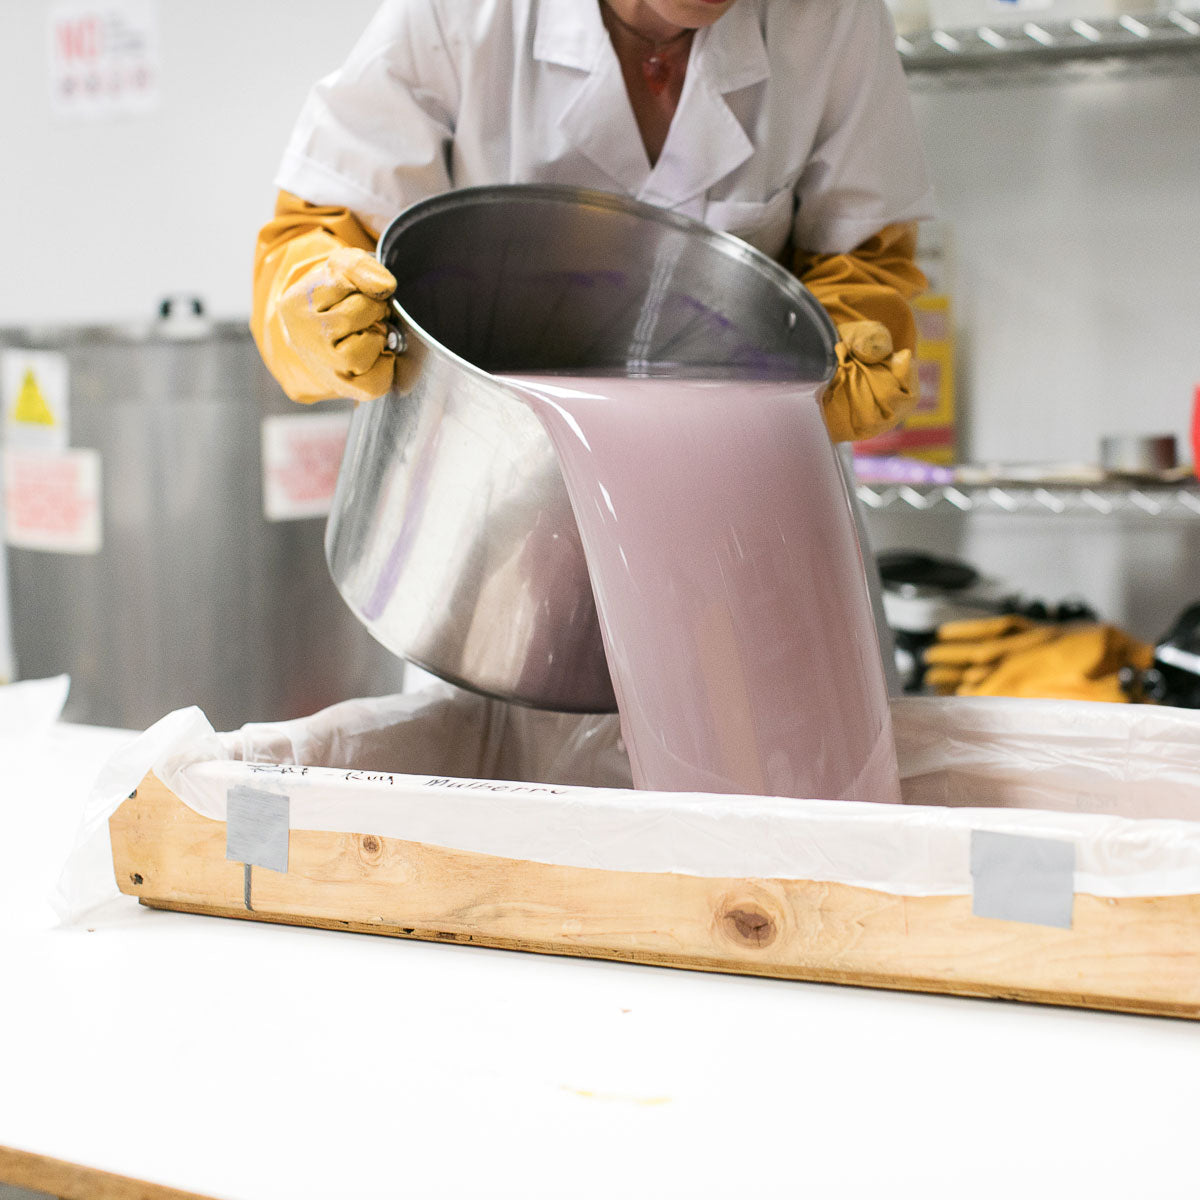 Bar soap mixture being poured into the mold